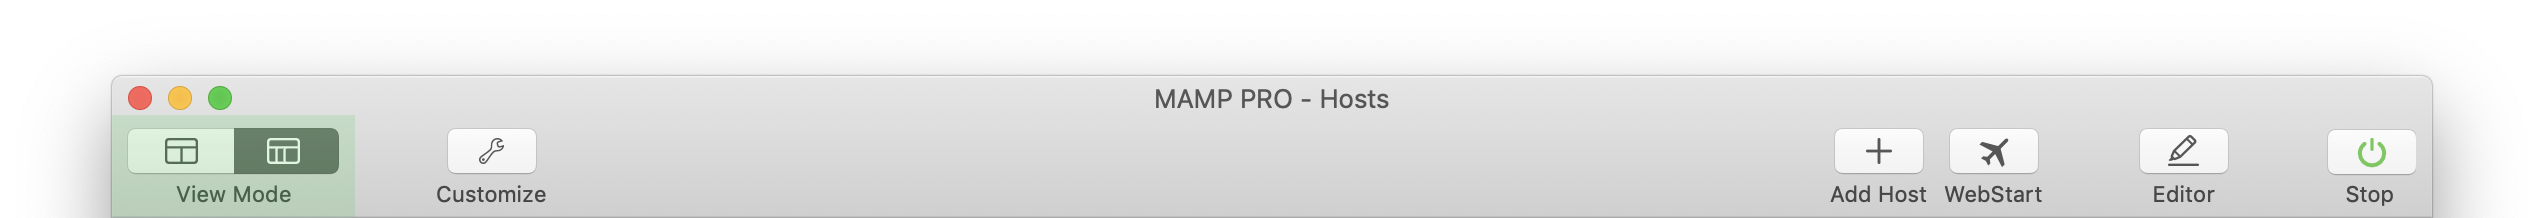 MAMP PRO - Toggle View Mode